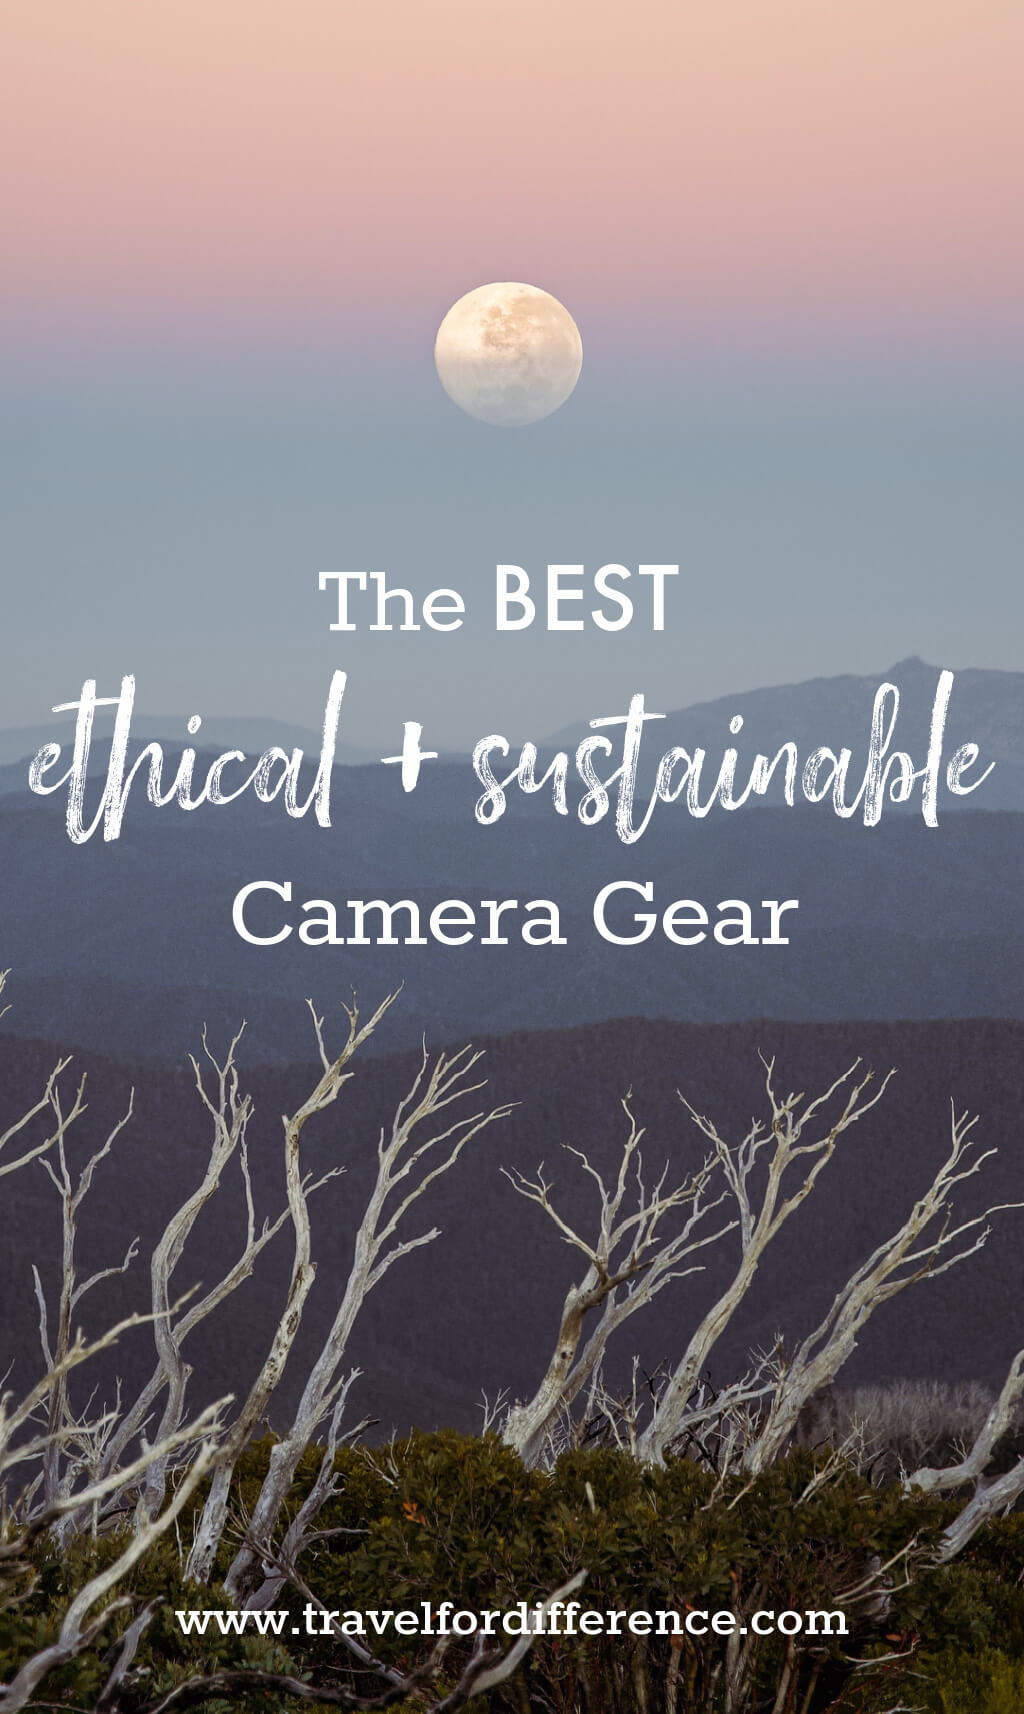 """Full moon setting behind a layer of mountains with text overlay """"The best ethical + sustainable camera gear"""""""